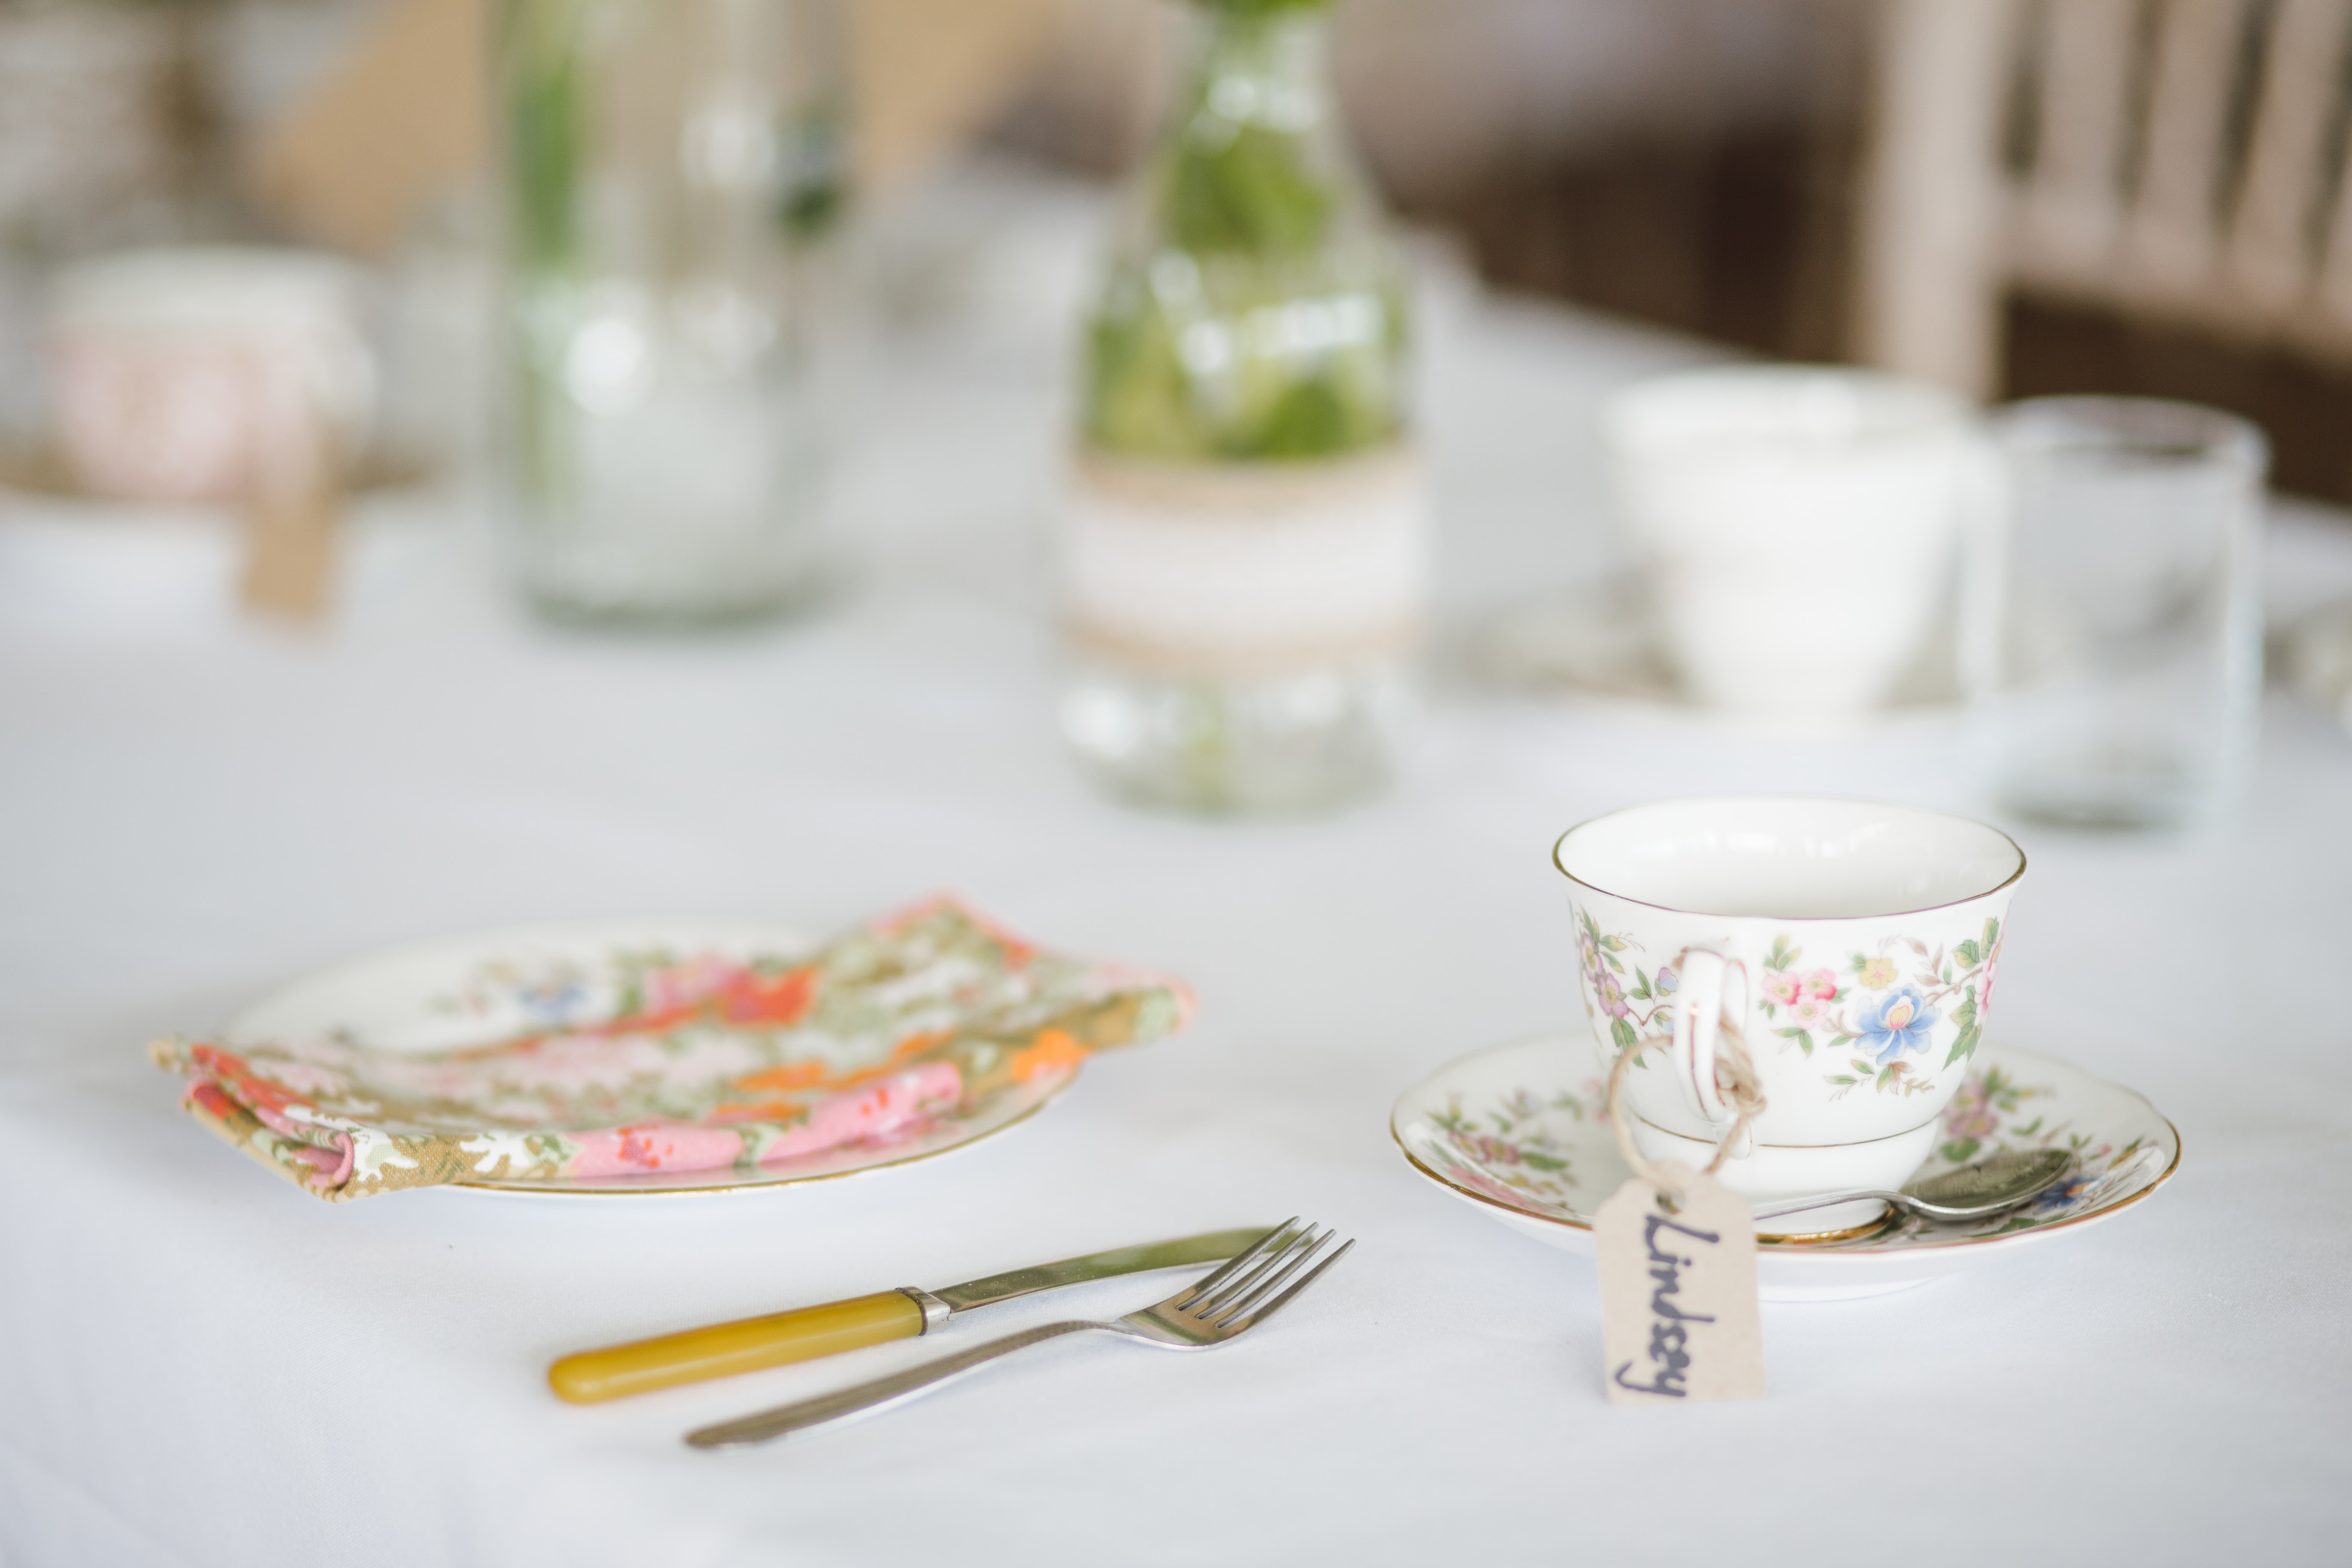 white and silver tableware on top of white wooden table